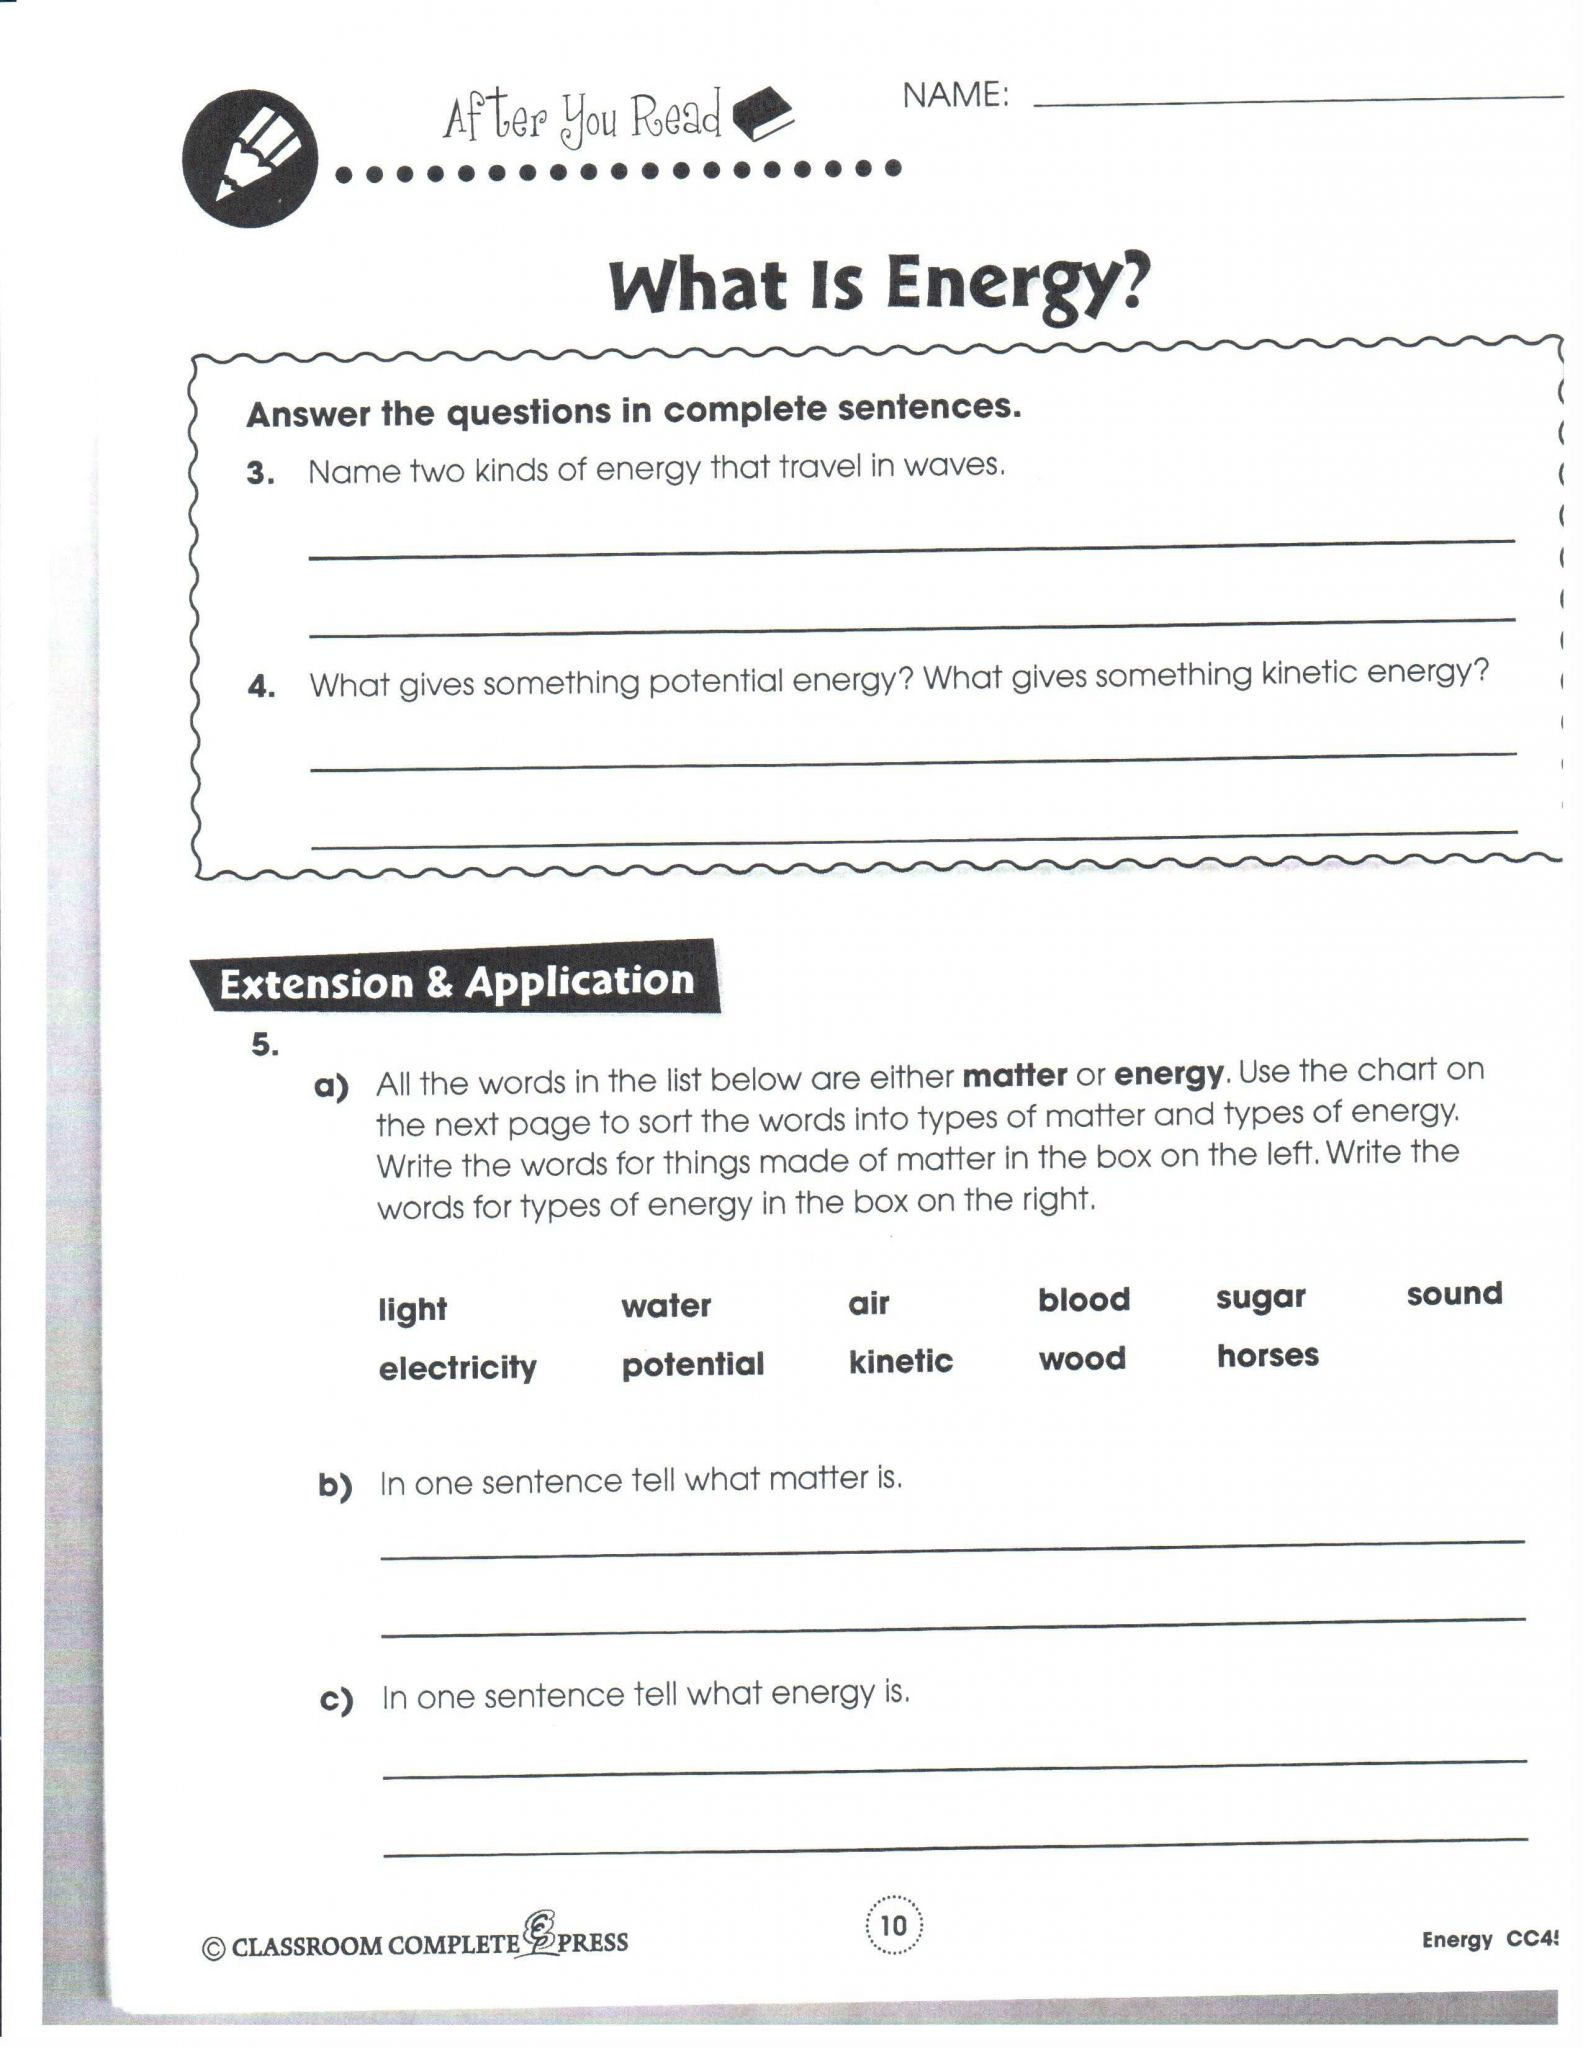 Unit 3 Worksheet Quantitative Energy Problems together with Kinetic and Potential Energy Problems Worksheet Answers Fresh 12